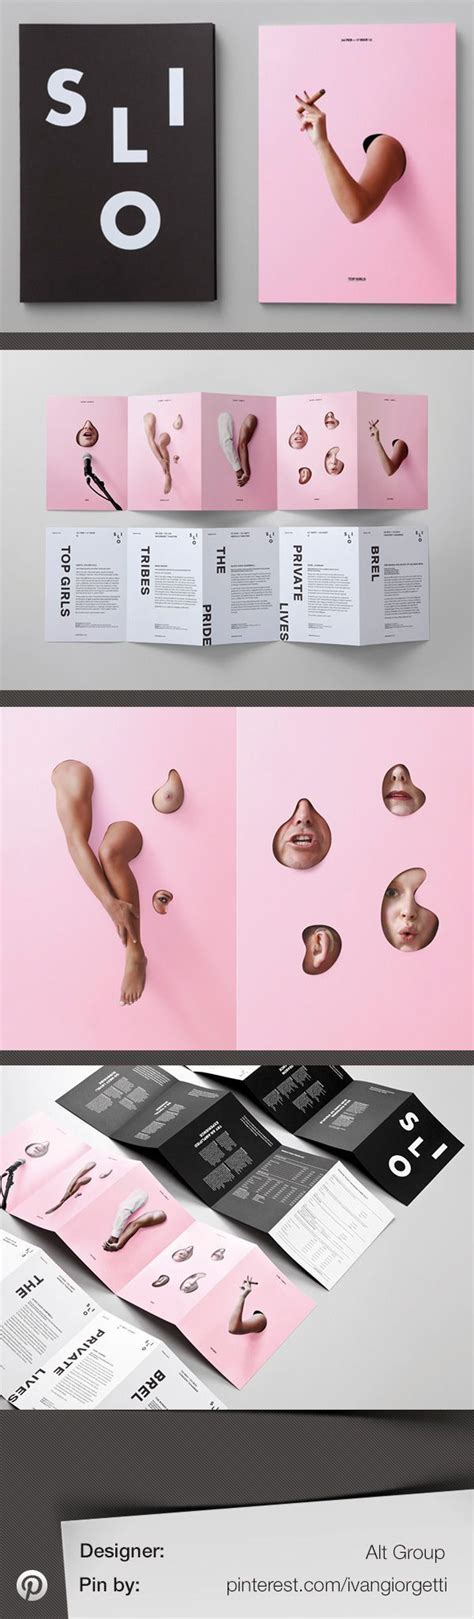 booklet layout pinterest silo theatre identity design by alt group branding and